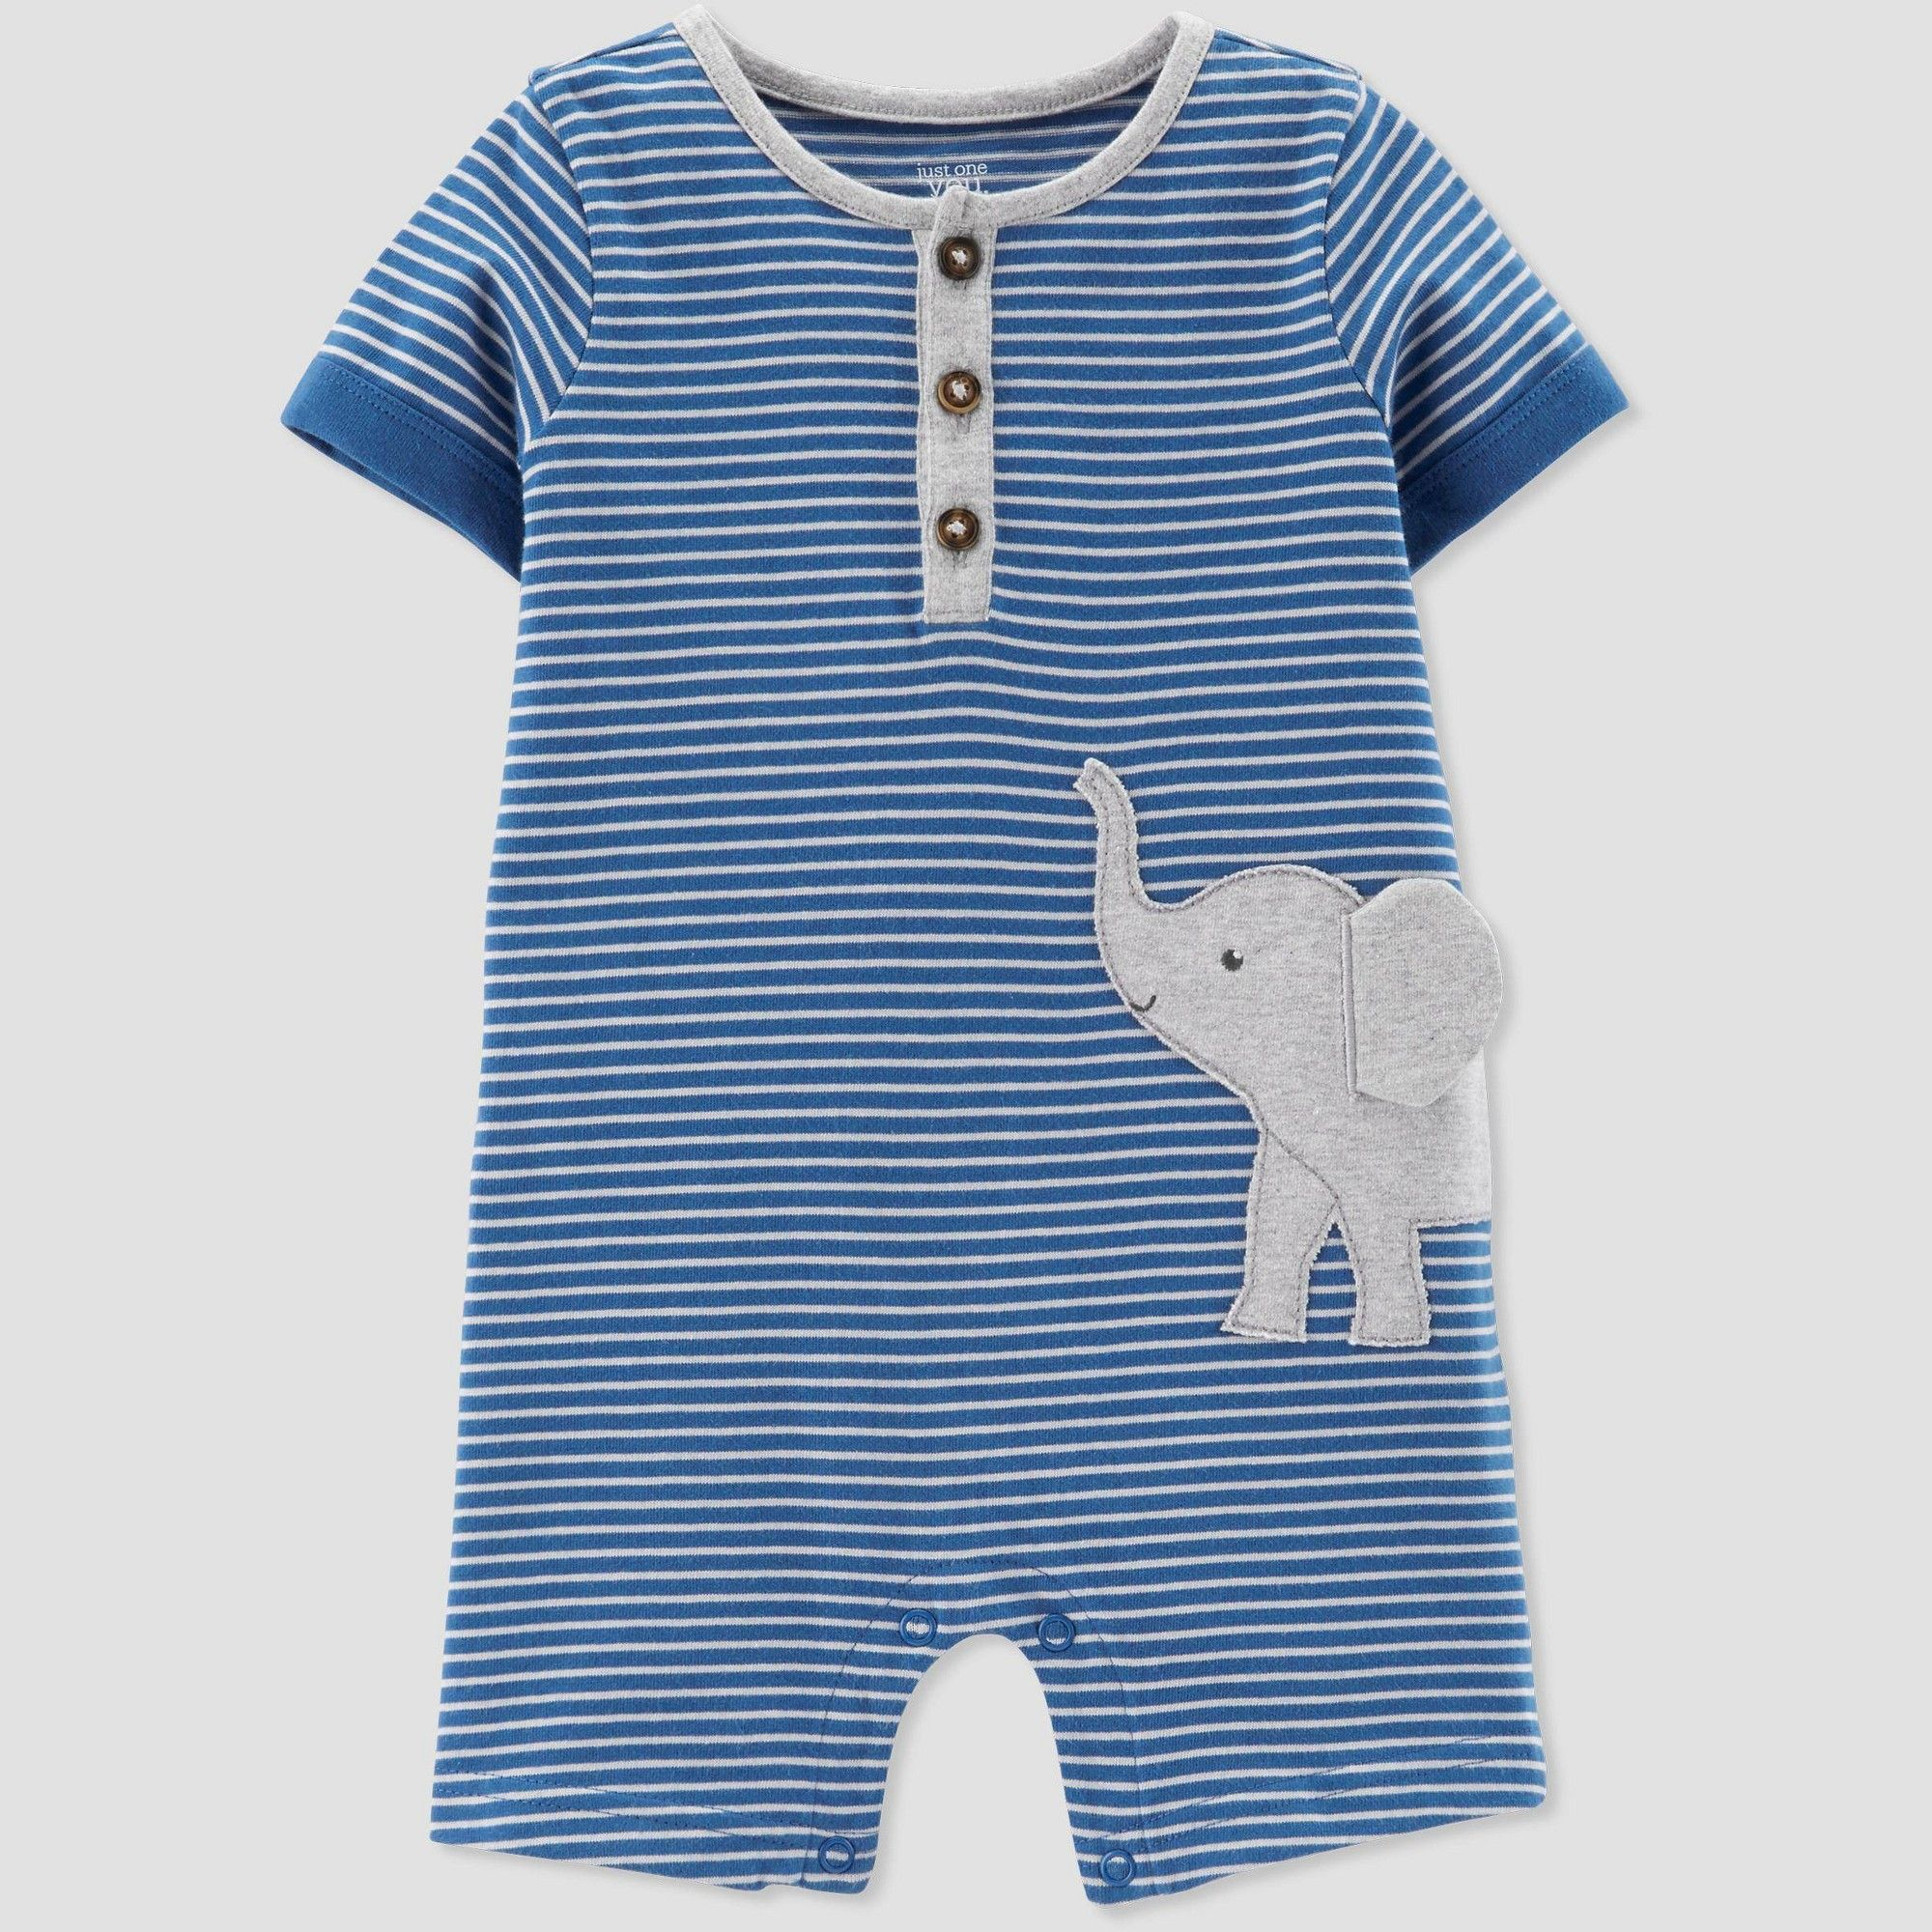 f063597f2 Baby Boys  Striped Elephant Romper - Just One You made by carter s Blue 12M